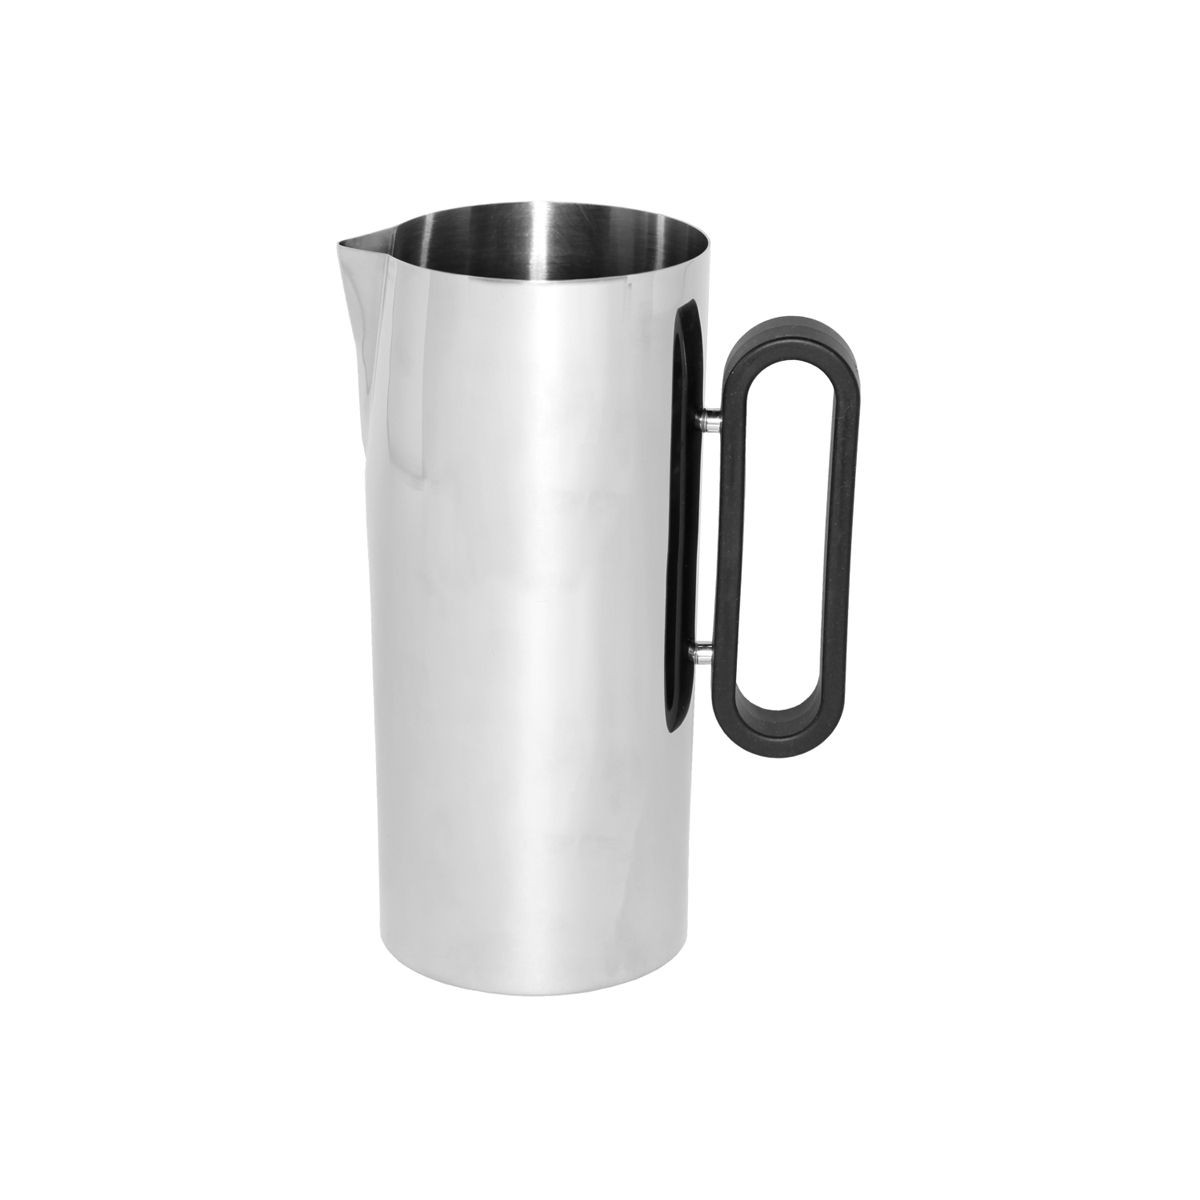 Service Ideas SM-24 SteelForme Stainless Steel Water Pitcher, 64 oz.